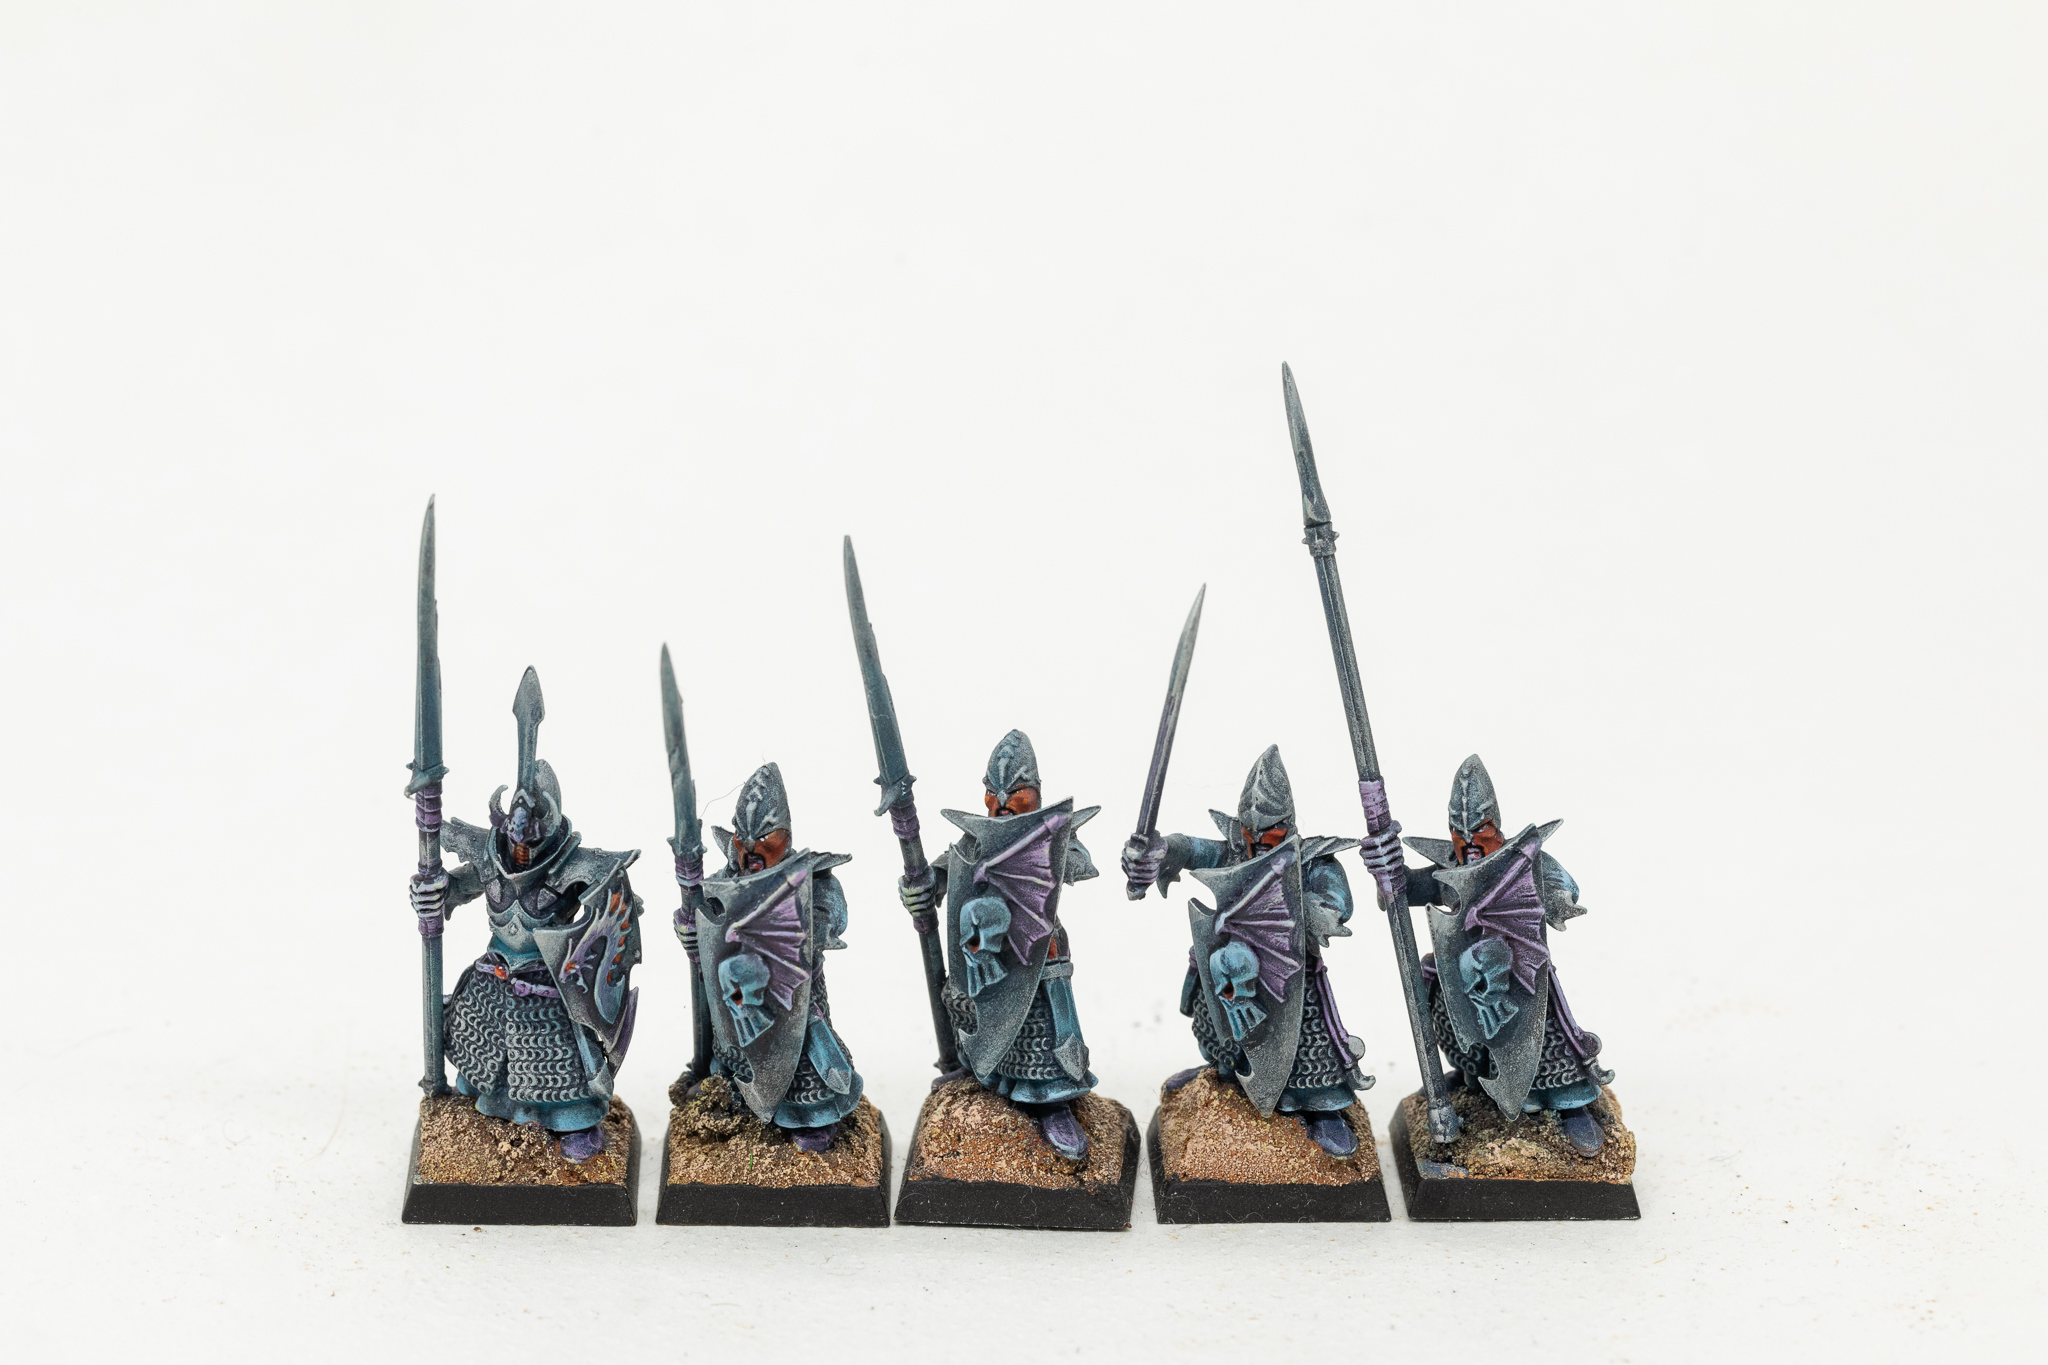 vente-figurines-elfesnoirs0018.jpg